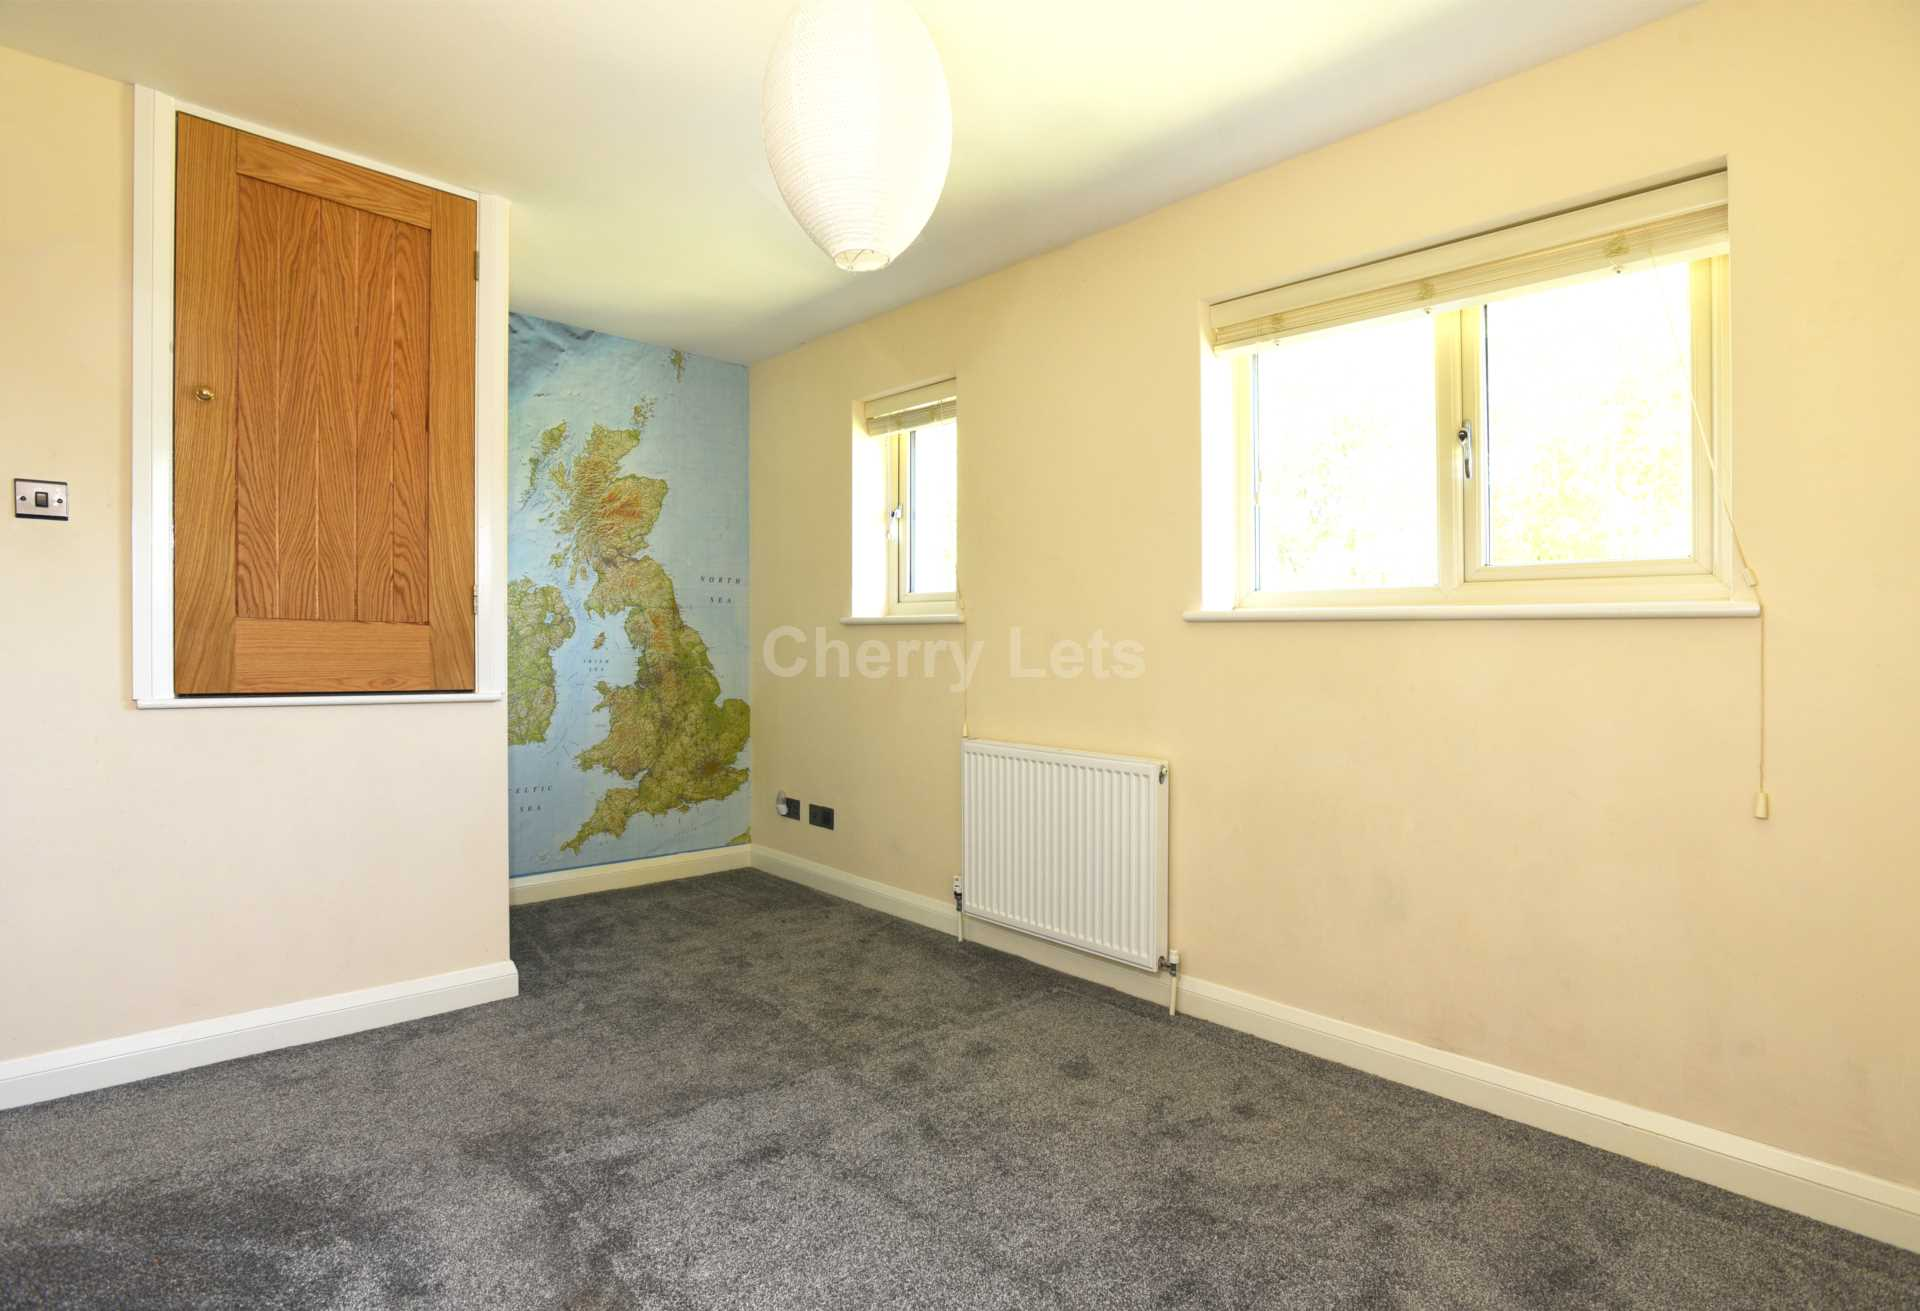 3 bed terraced house to rent in Keytes Close, Adderbury, OX17  - Property Image 8